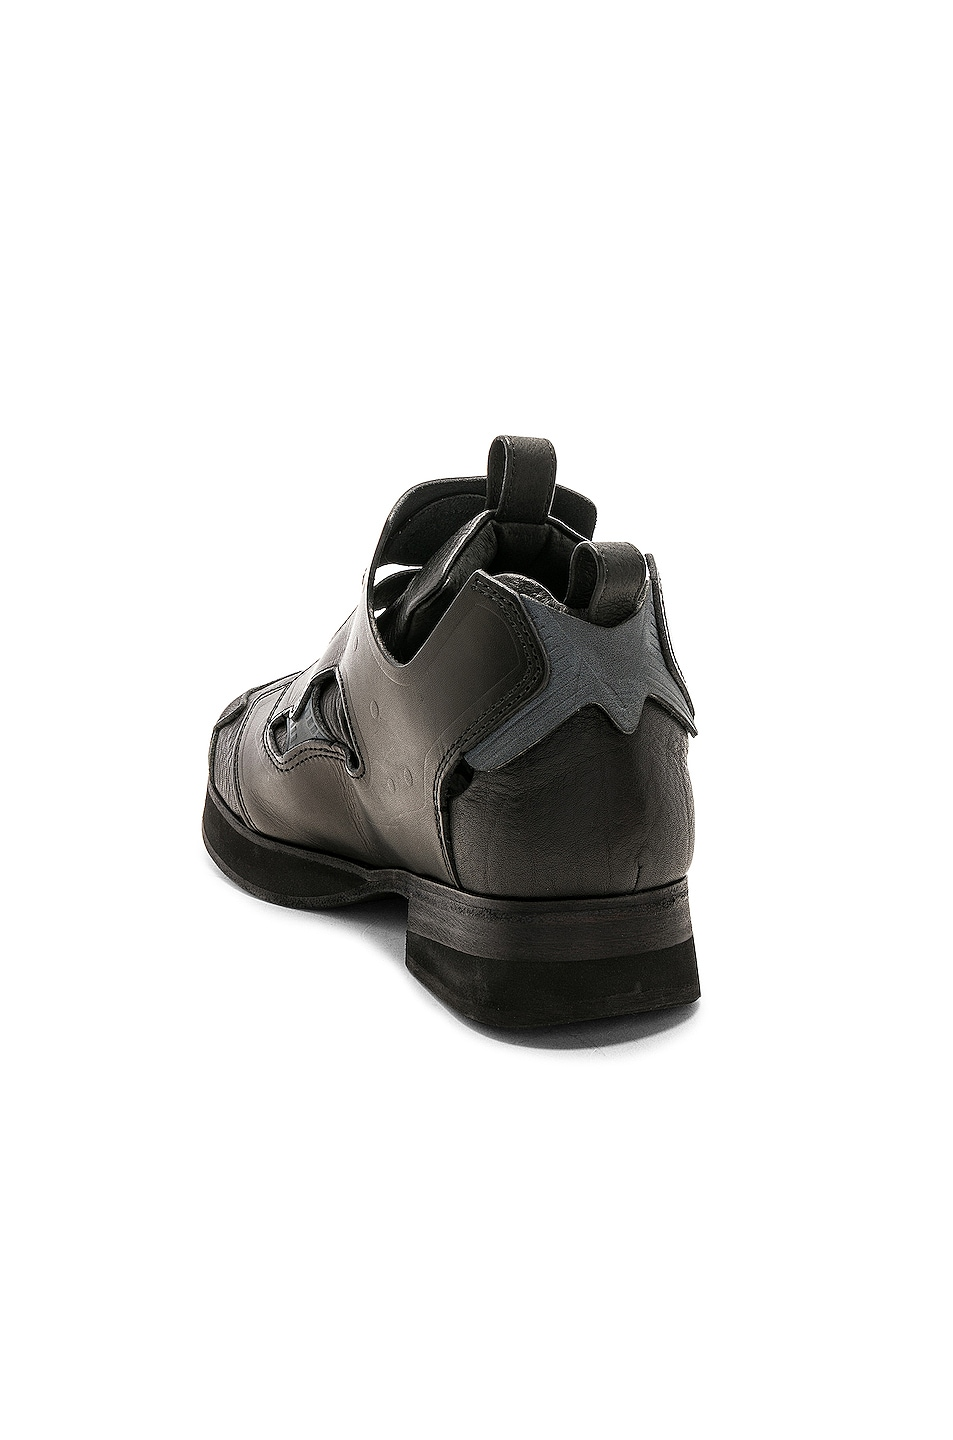 Image 3 of Hender Scheme Manual Industrial Product 15 in Black